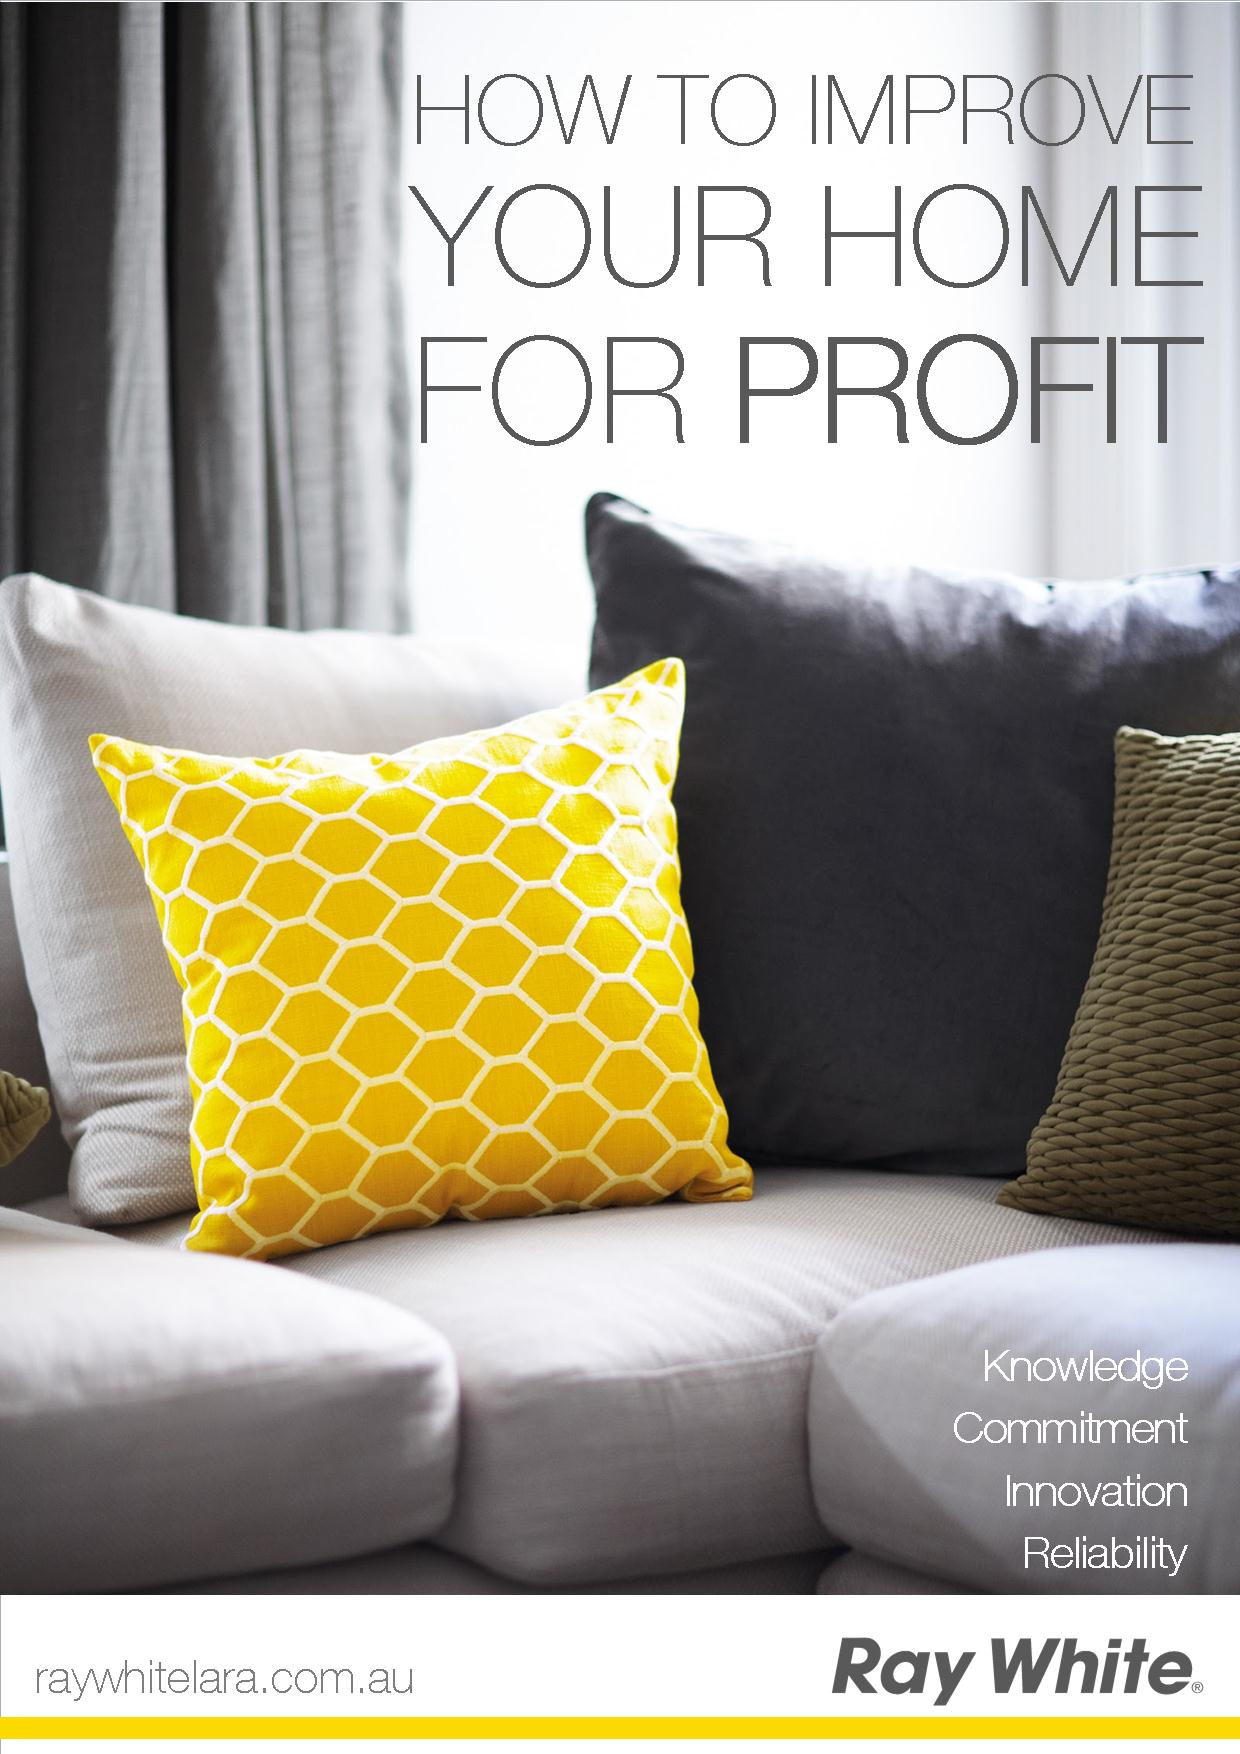 Improve your home for profit